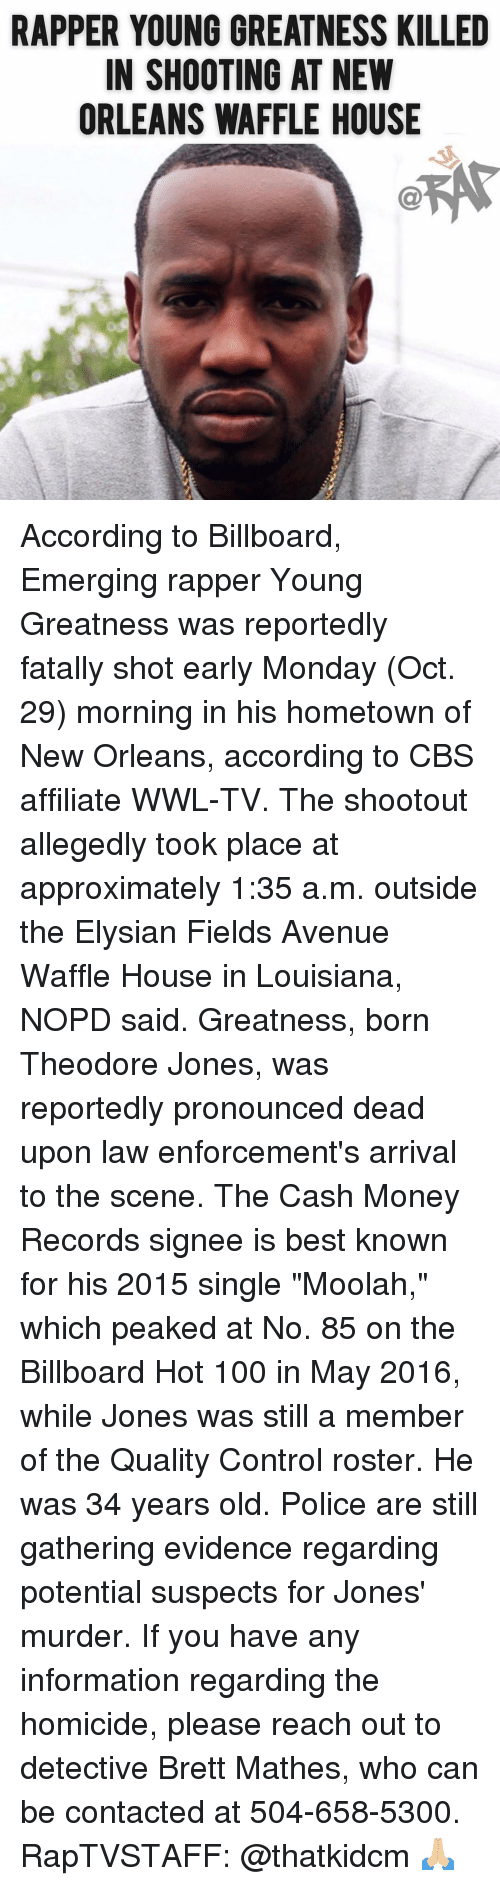 """Allegedly: RAPPER YOUNG GREATNESS KILLED  IN SHOOTING AT NEW  ORLEANS WAFFLE HOUSE According to Billboard, Emerging rapper Young Greatness was reportedly fatally shot early Monday (Oct. 29) morning in his hometown of New Orleans, according to CBS affiliate WWL-TV. The shootout allegedly took place at approximately 1:35 a.m. outside the Elysian Fields Avenue Waffle House in Louisiana, NOPD said. Greatness, born Theodore Jones, was reportedly pronounced dead upon law enforcement's arrival to the scene. The Cash Money Records signee is best known for his 2015 single """"Moolah,"""" which peaked at No. 85 on the Billboard Hot 100 in May 2016, while Jones was still a member of the Quality Control roster. He was 34 years old. Police are still gathering evidence regarding potential suspects for Jones' murder. If you have any information regarding the homicide, please reach out to detective Brett Mathes, who can be contacted at 504-658-5300. RapTVSTAFF: @thatkidcm 🙏🏼"""